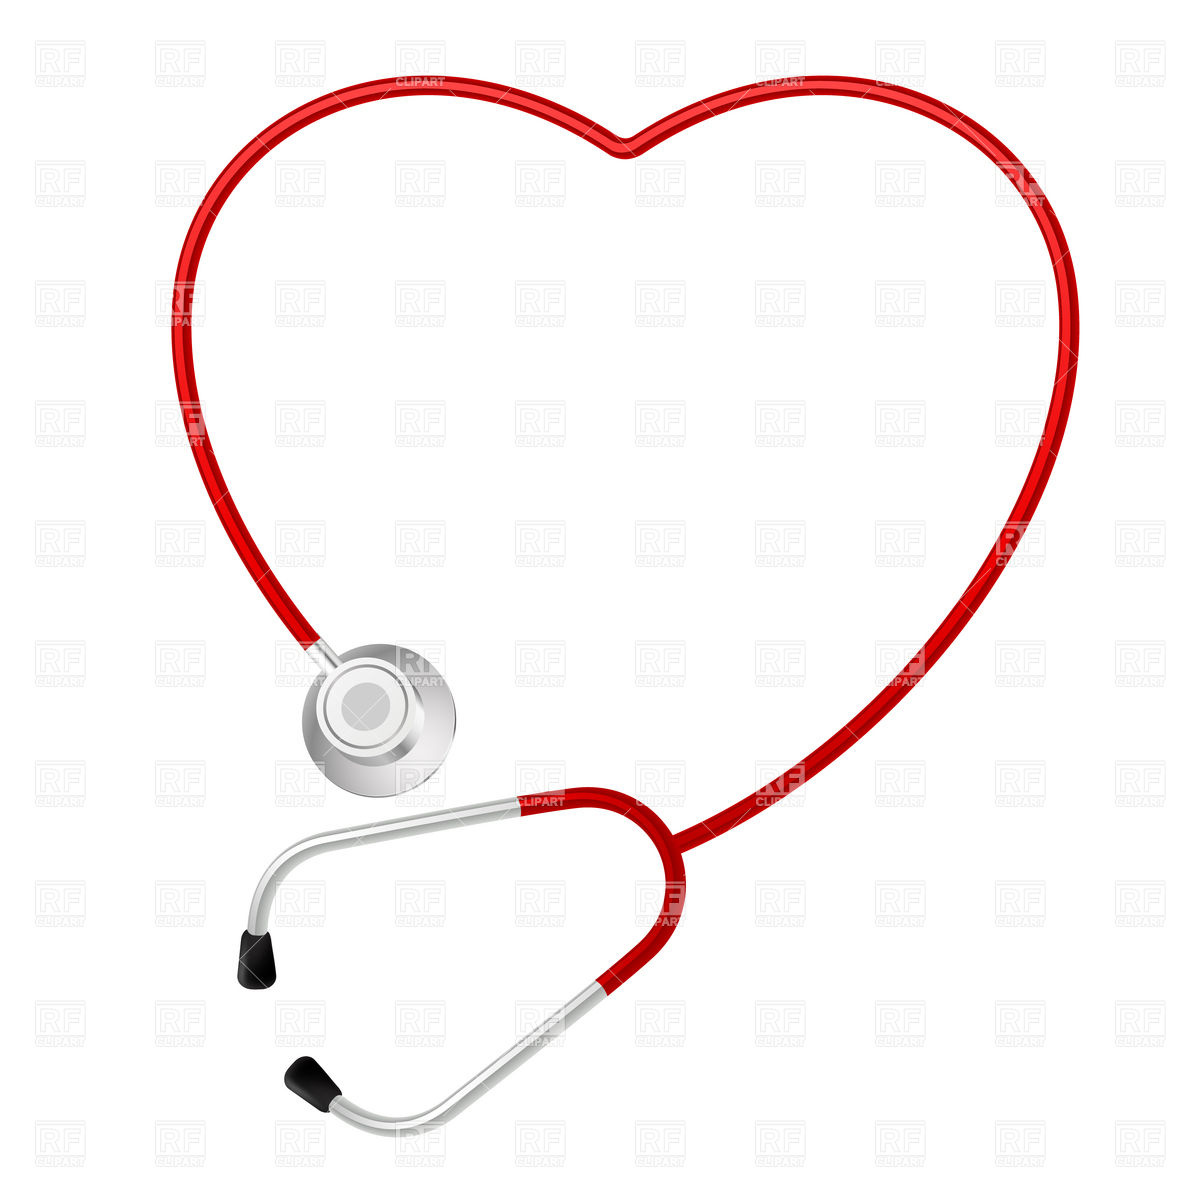 how to use a stethoscope to listen to heart